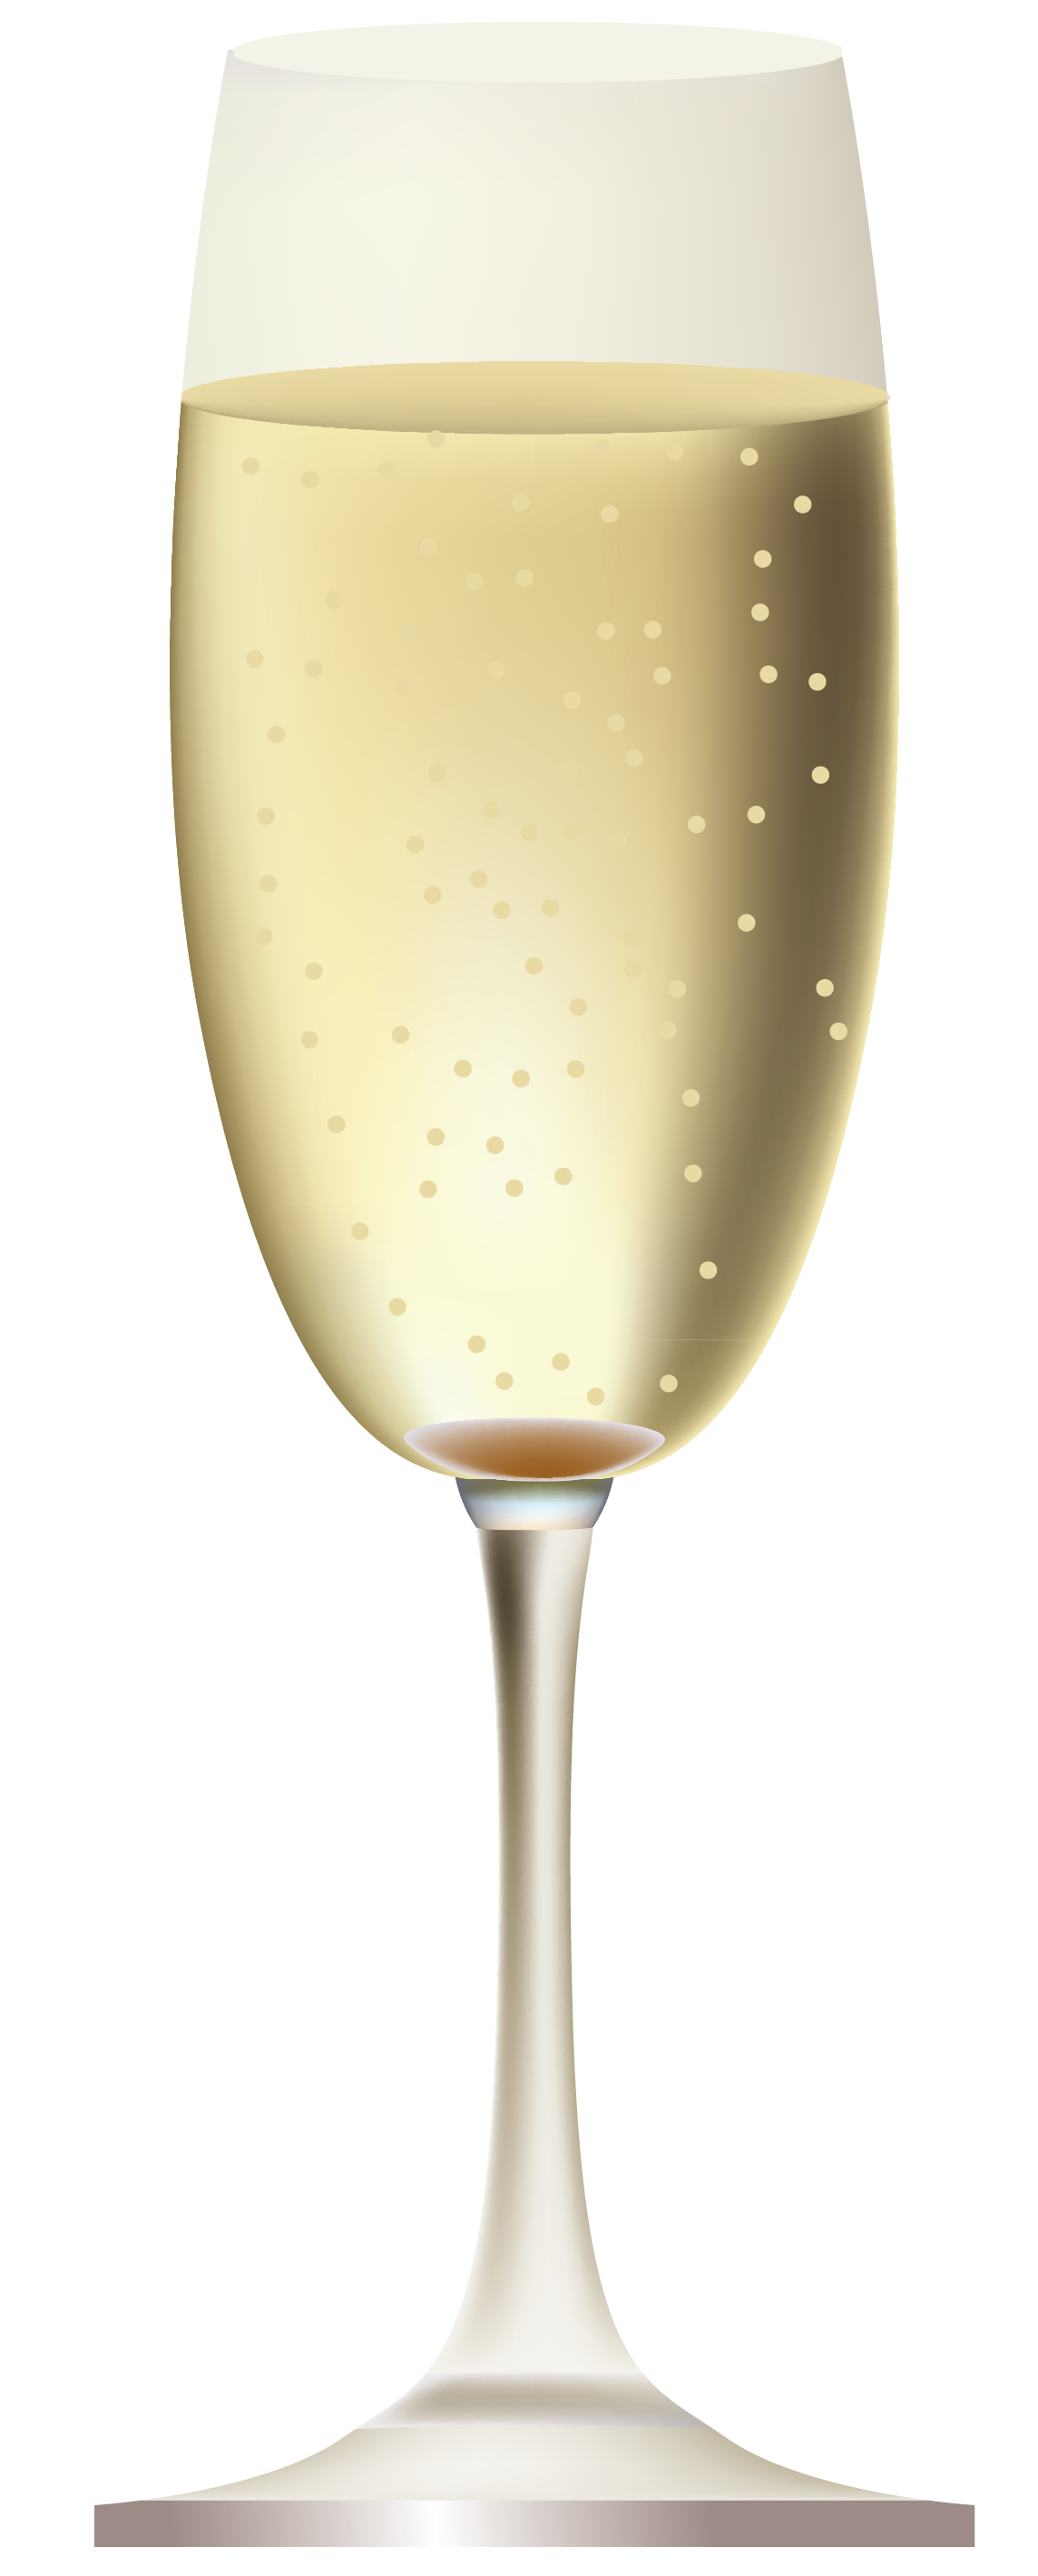 Glass png picture gallery. Champaign clipart birthday champagne